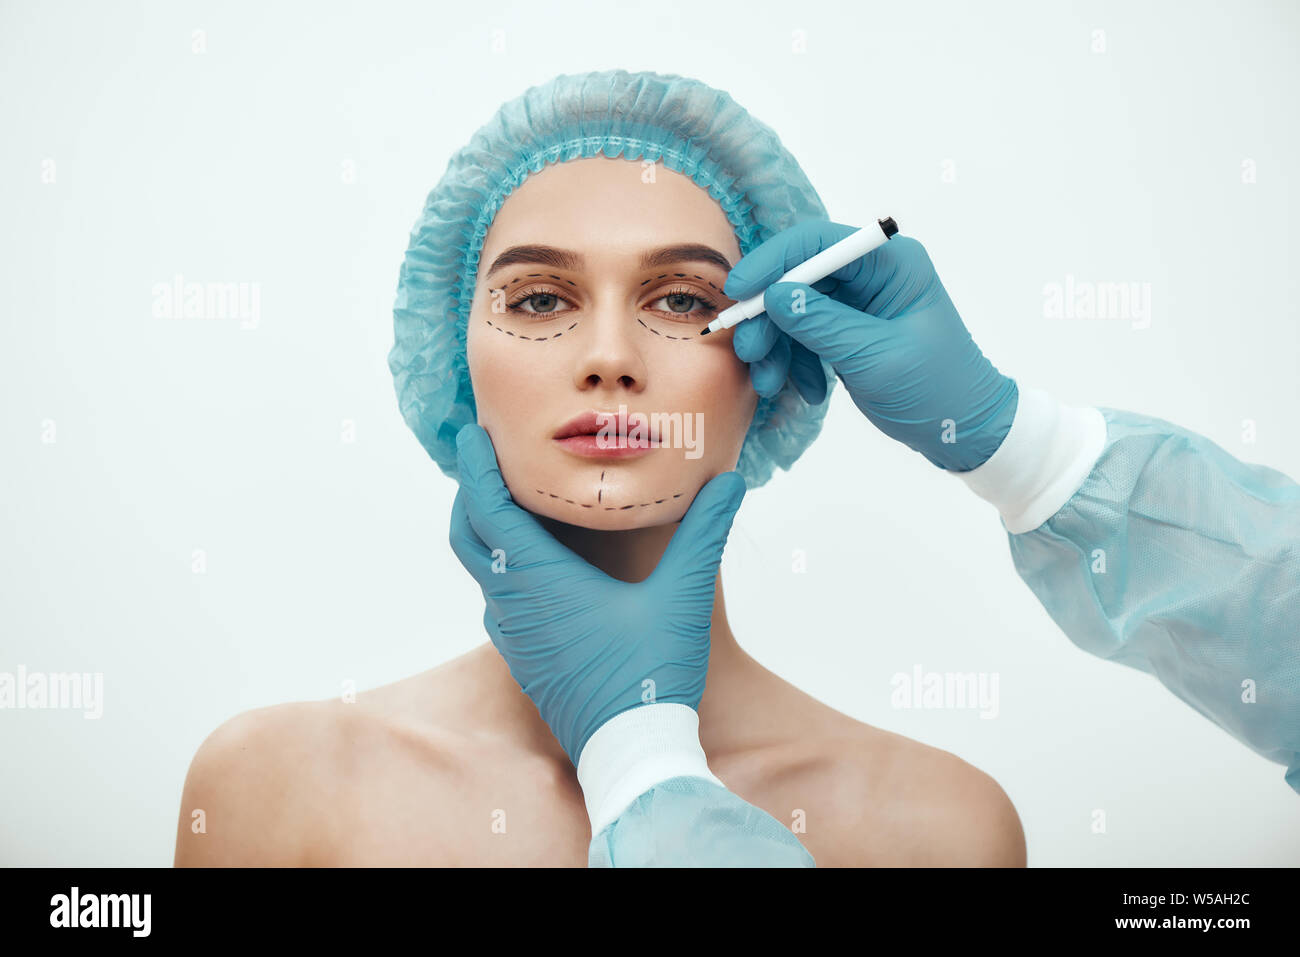 Perfect face. Beautiful and young woman in blue medical hat waiting for facial surgery while plastic surgeon in blue gloves drawing dashed lines on her face. Beauty concept. Facelift. Plastic surgery Stock Photo